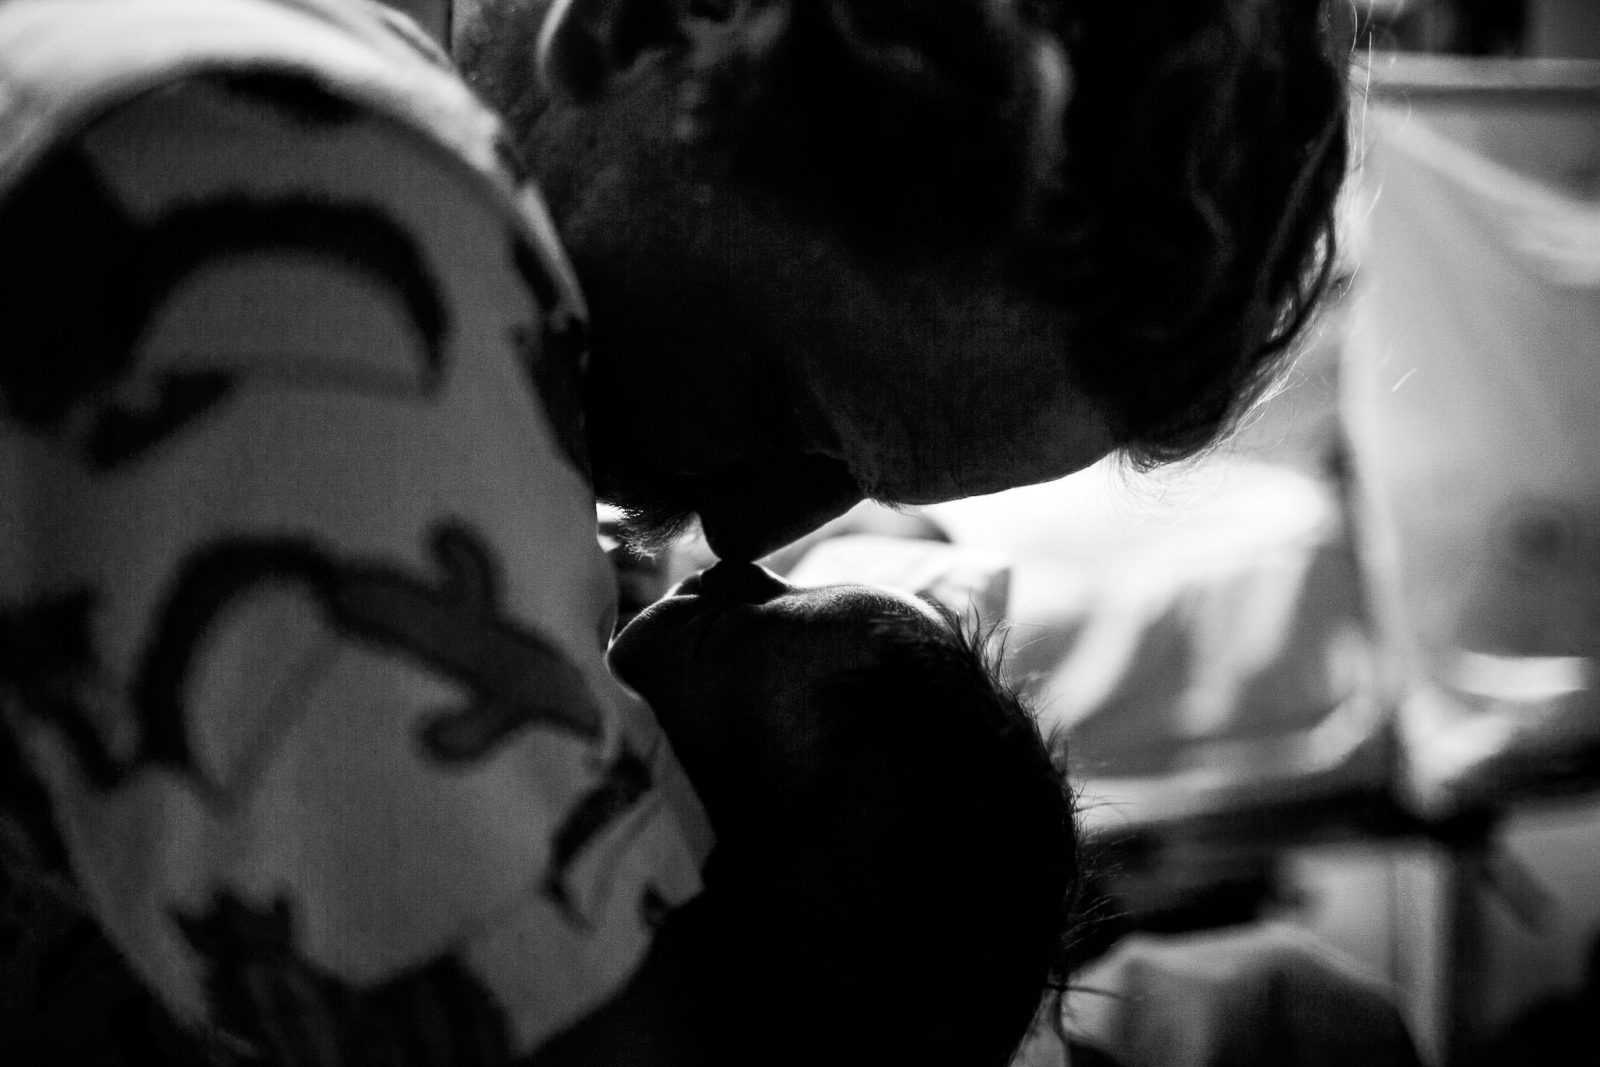 Photograph of uncle cuddling nephew on the day he was born at hospital in Wollongong NSW